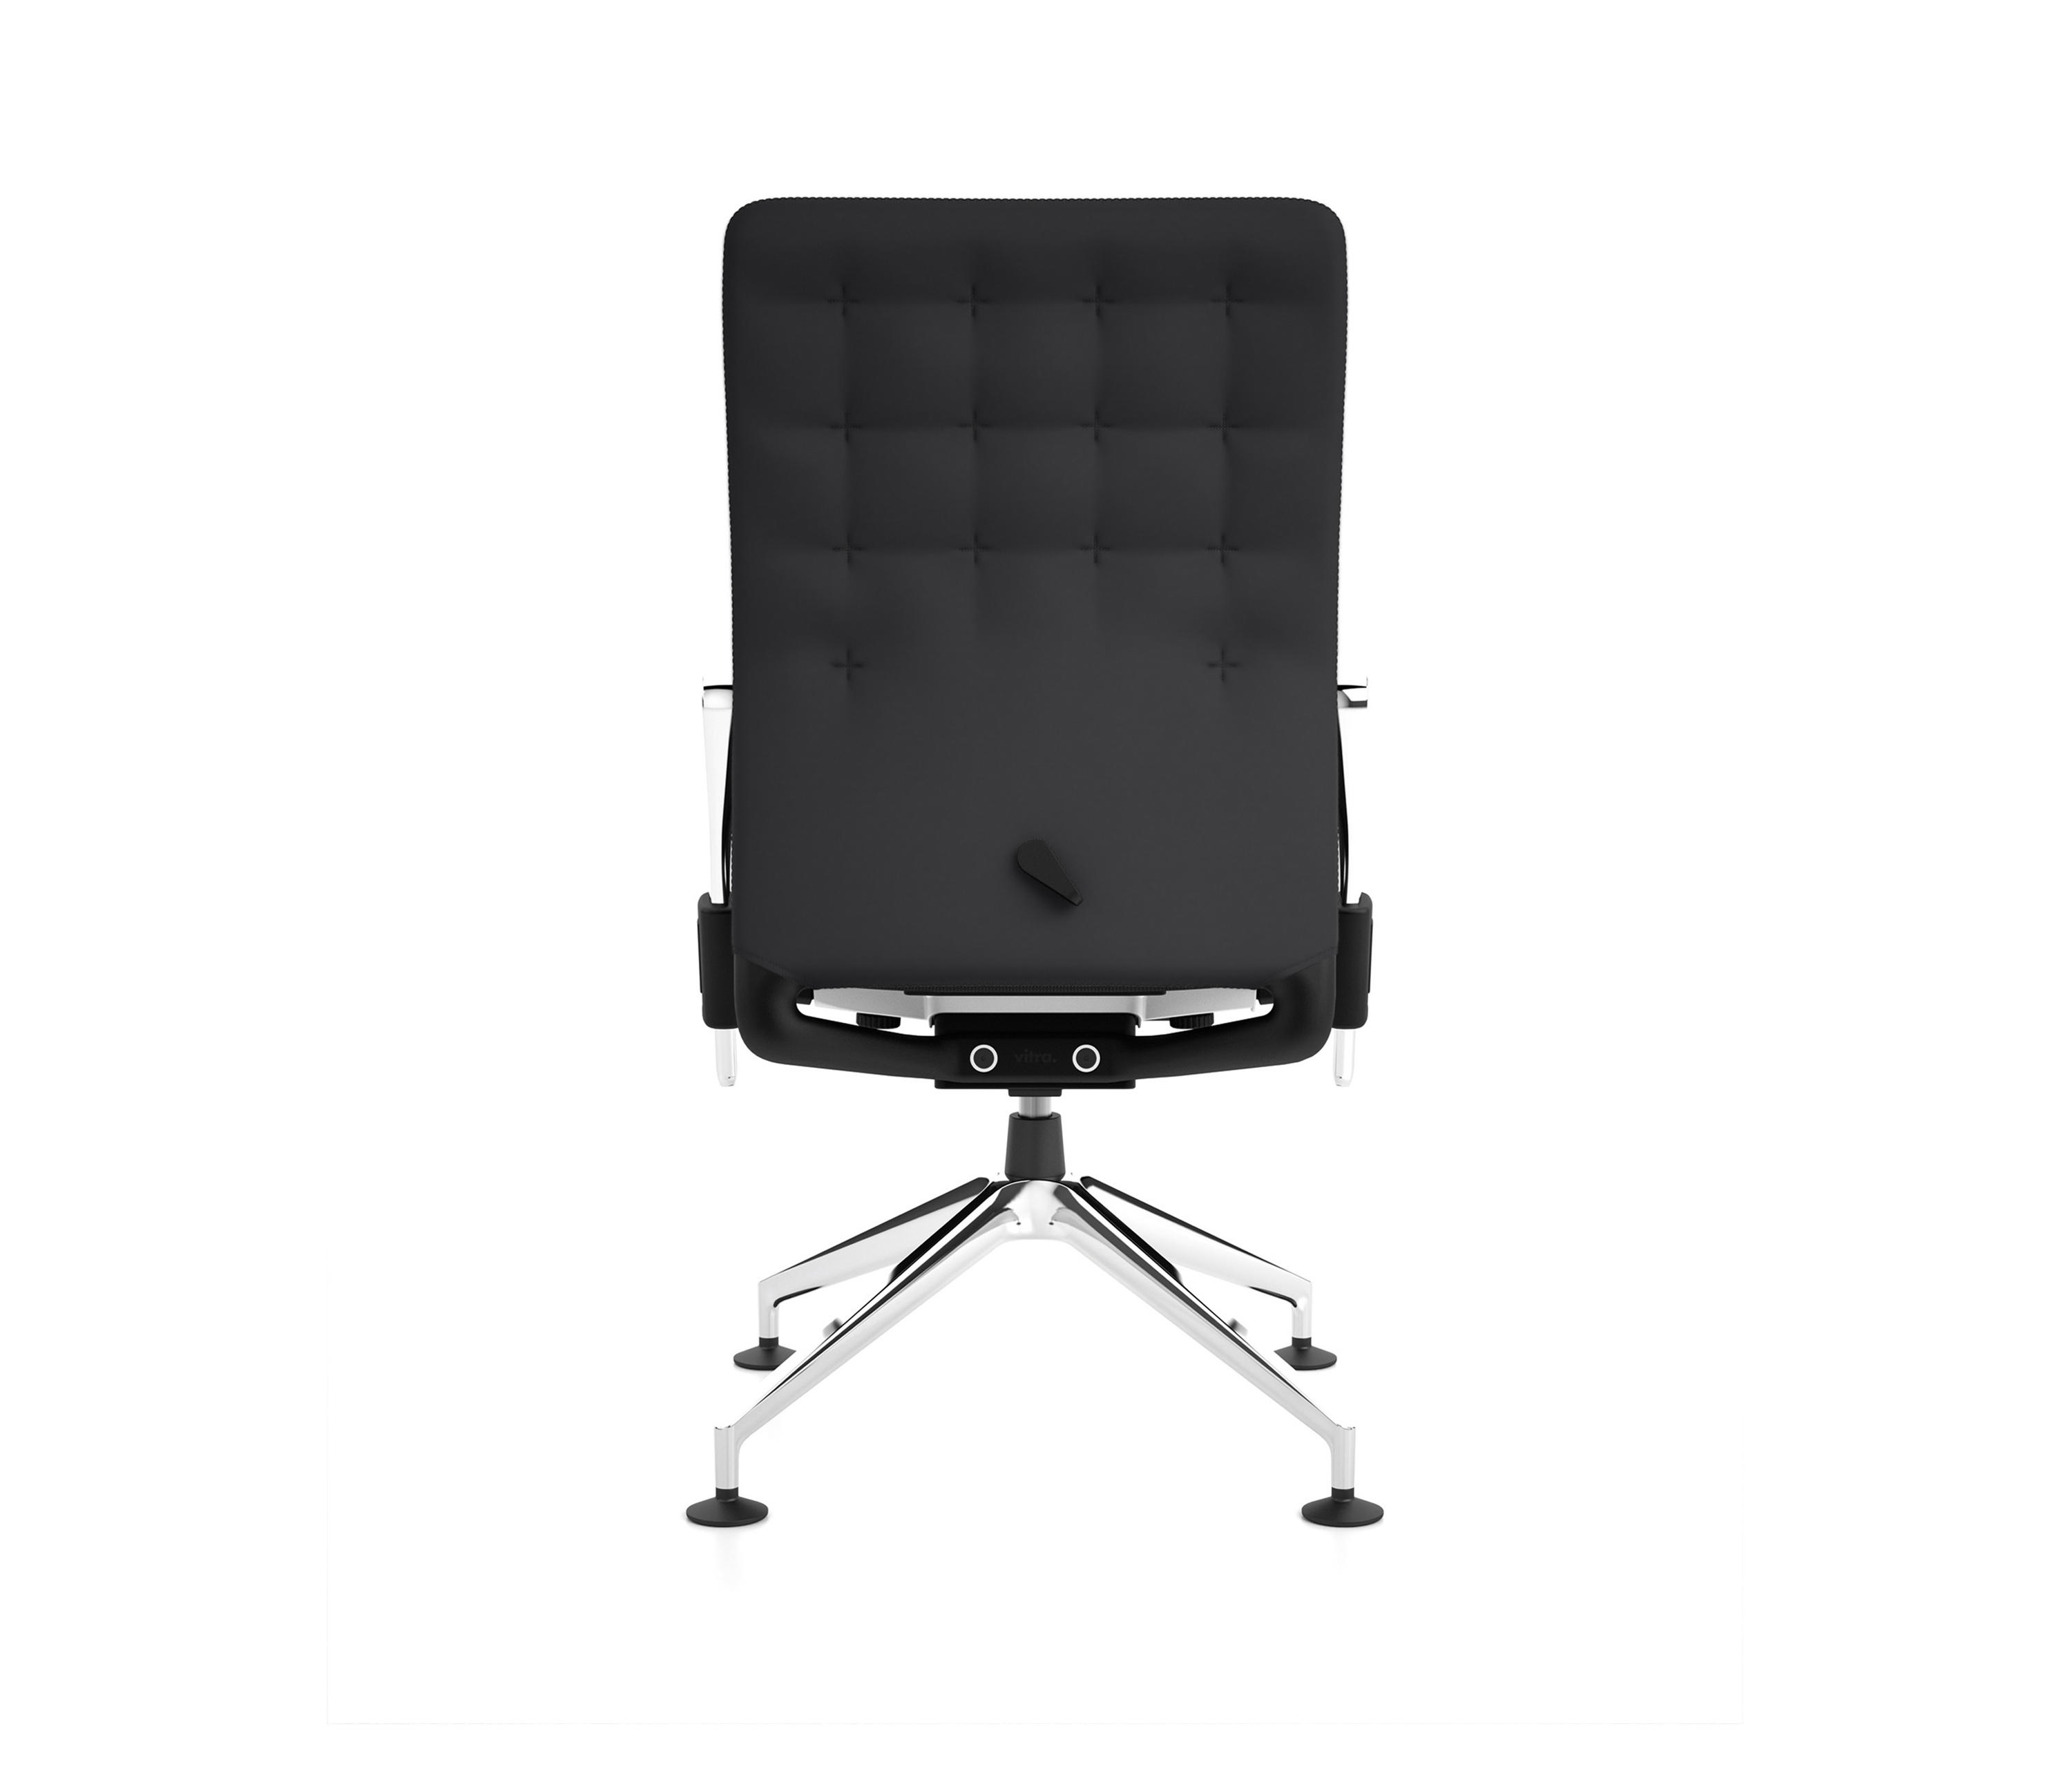 id trim task chairs from vitra architonic. Black Bedroom Furniture Sets. Home Design Ideas